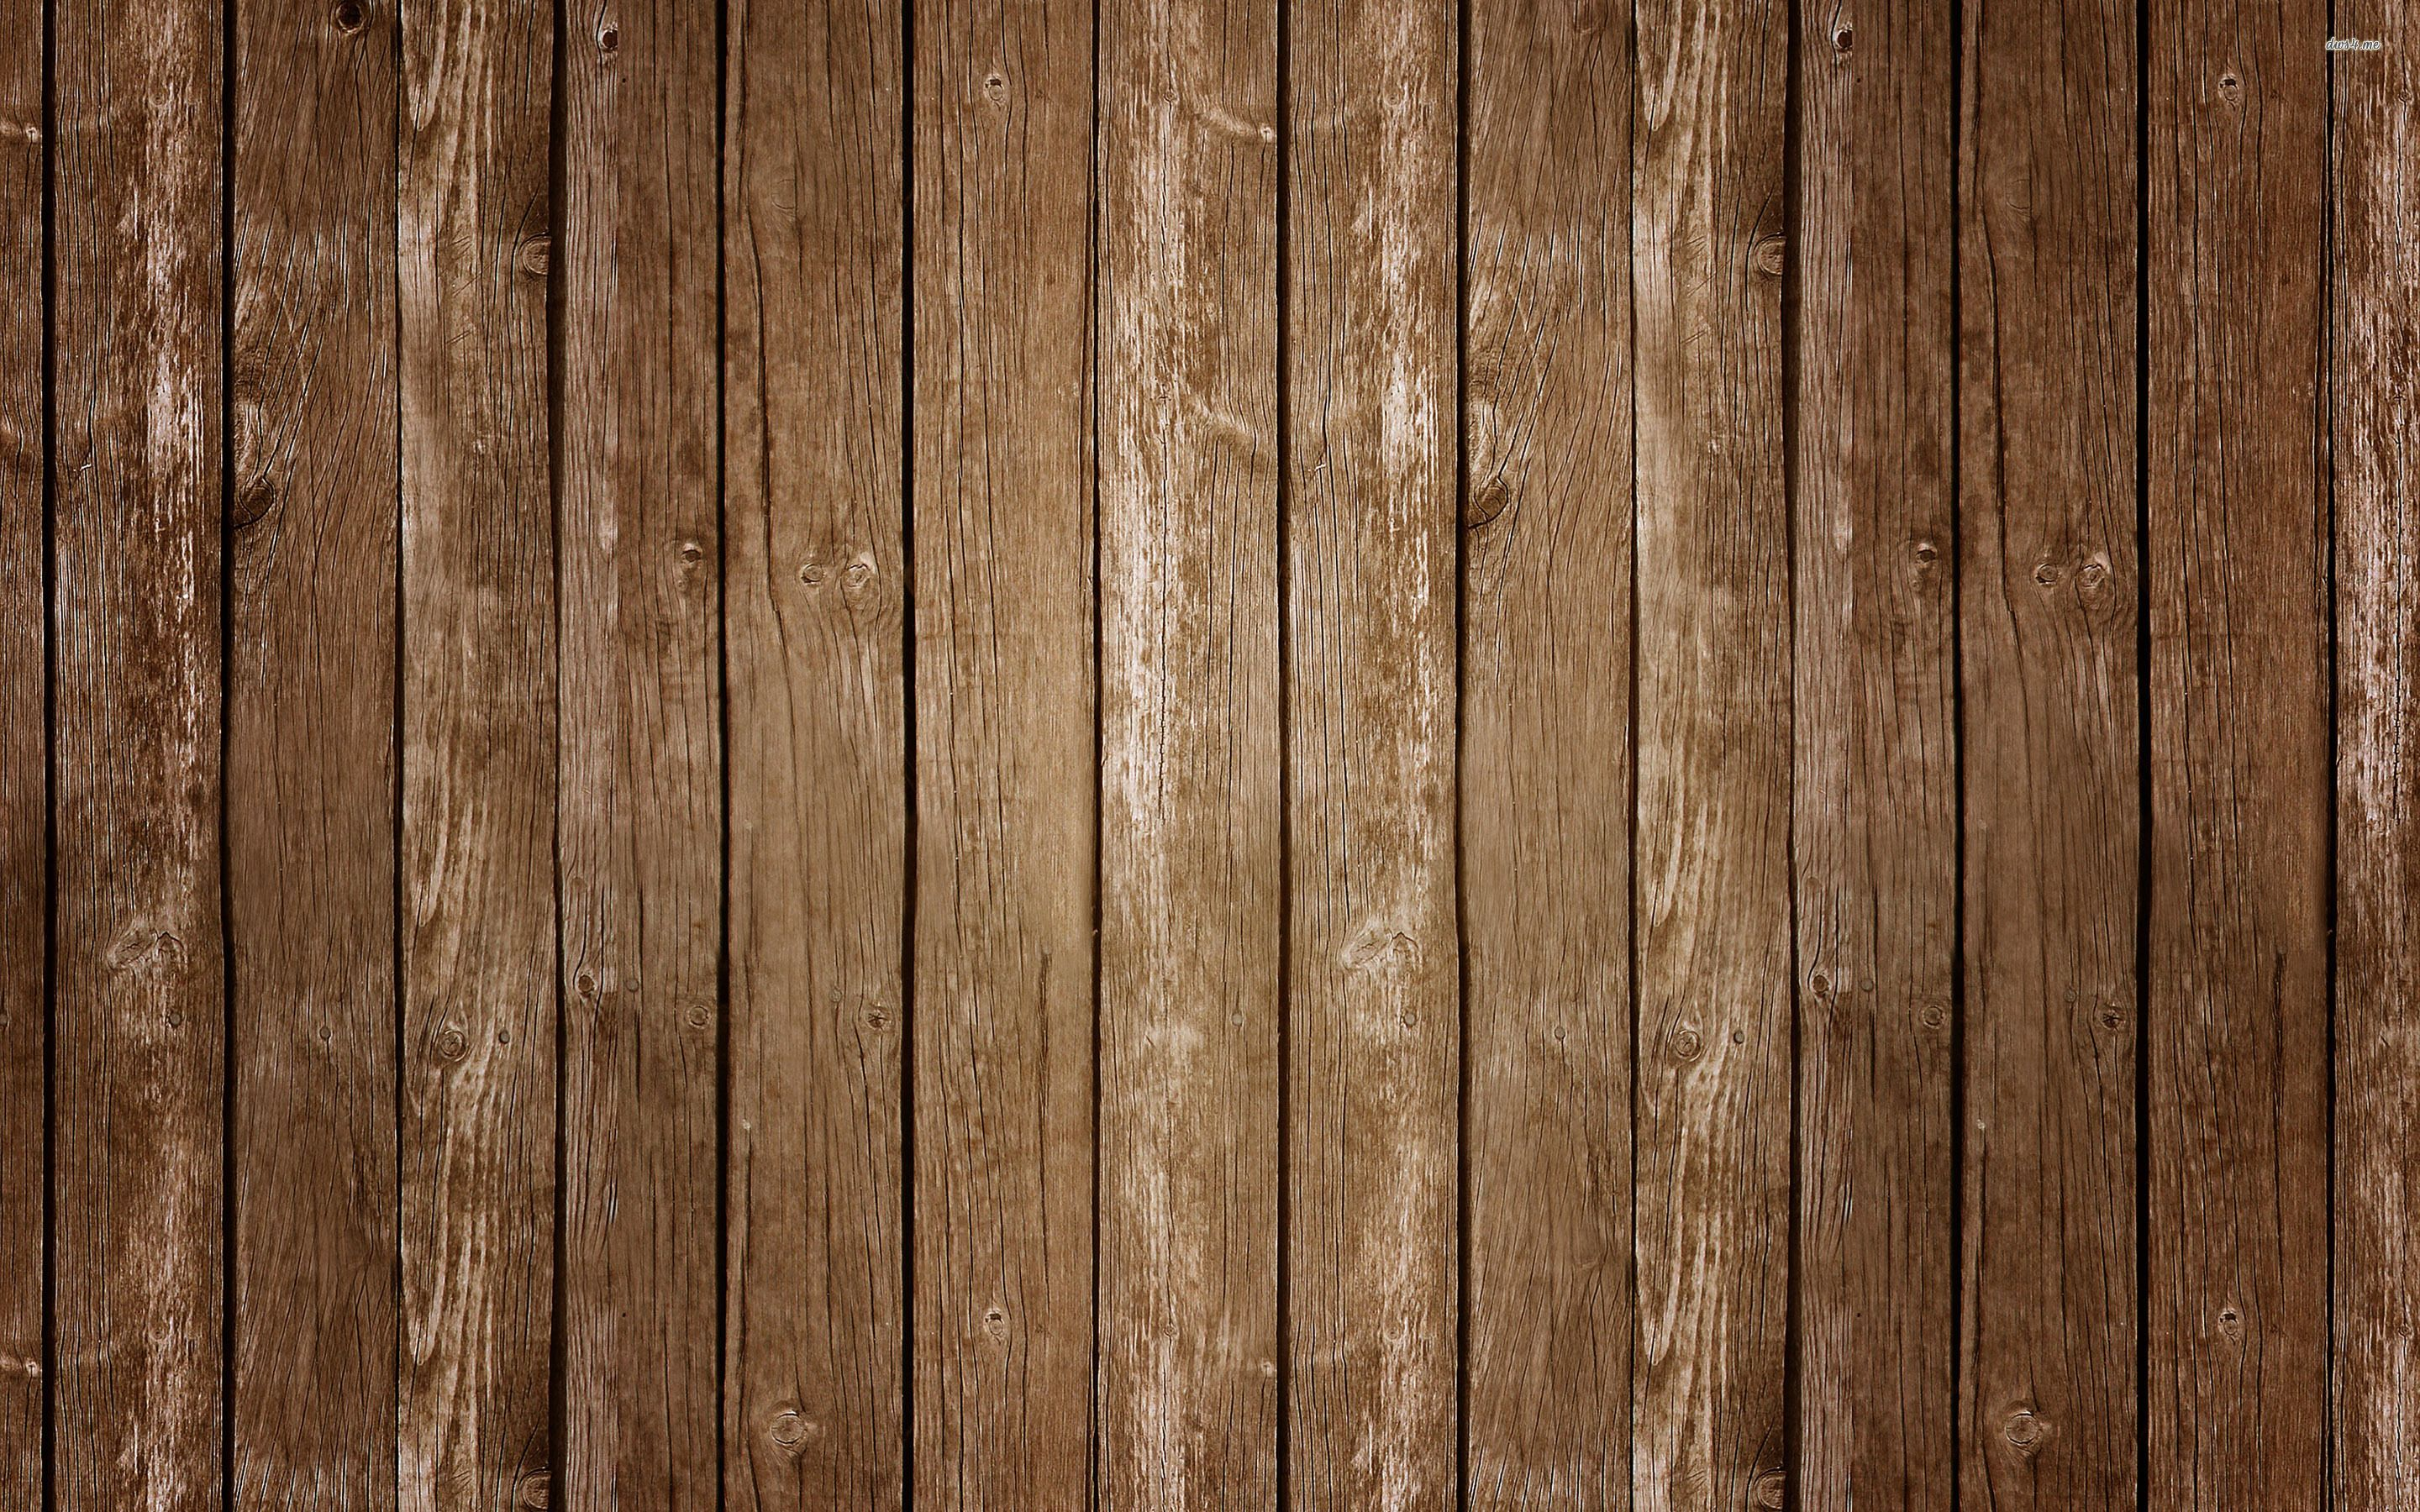 Wood Texture Wallpaper « Free High Definition Wallpapers